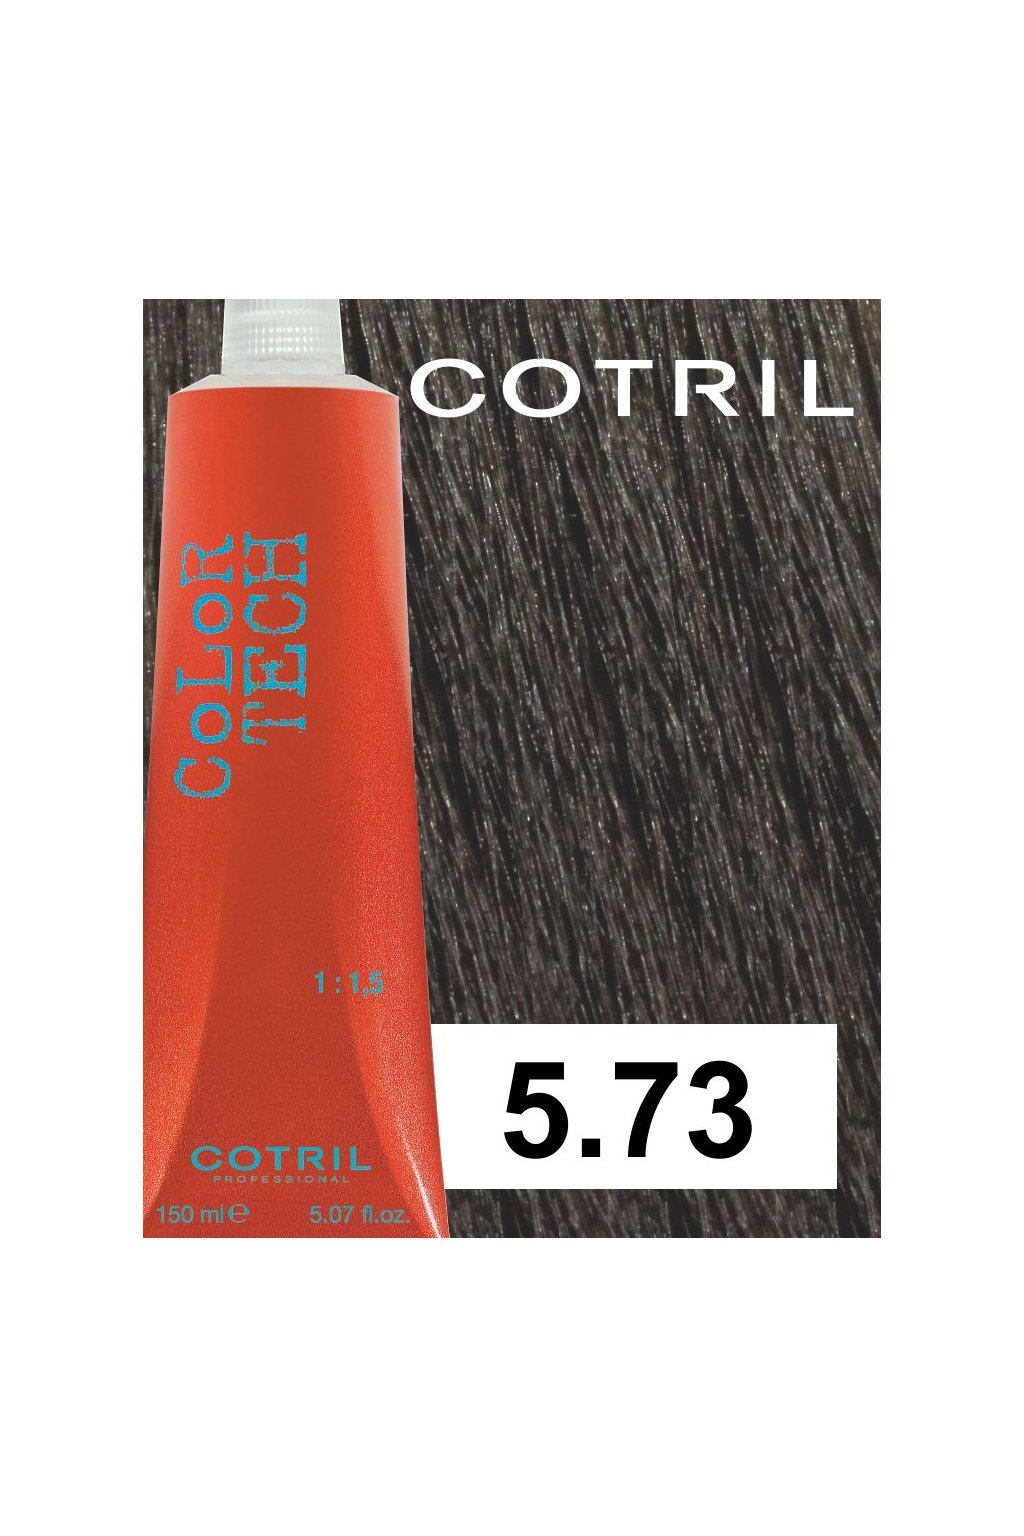 5 73 ct cotril